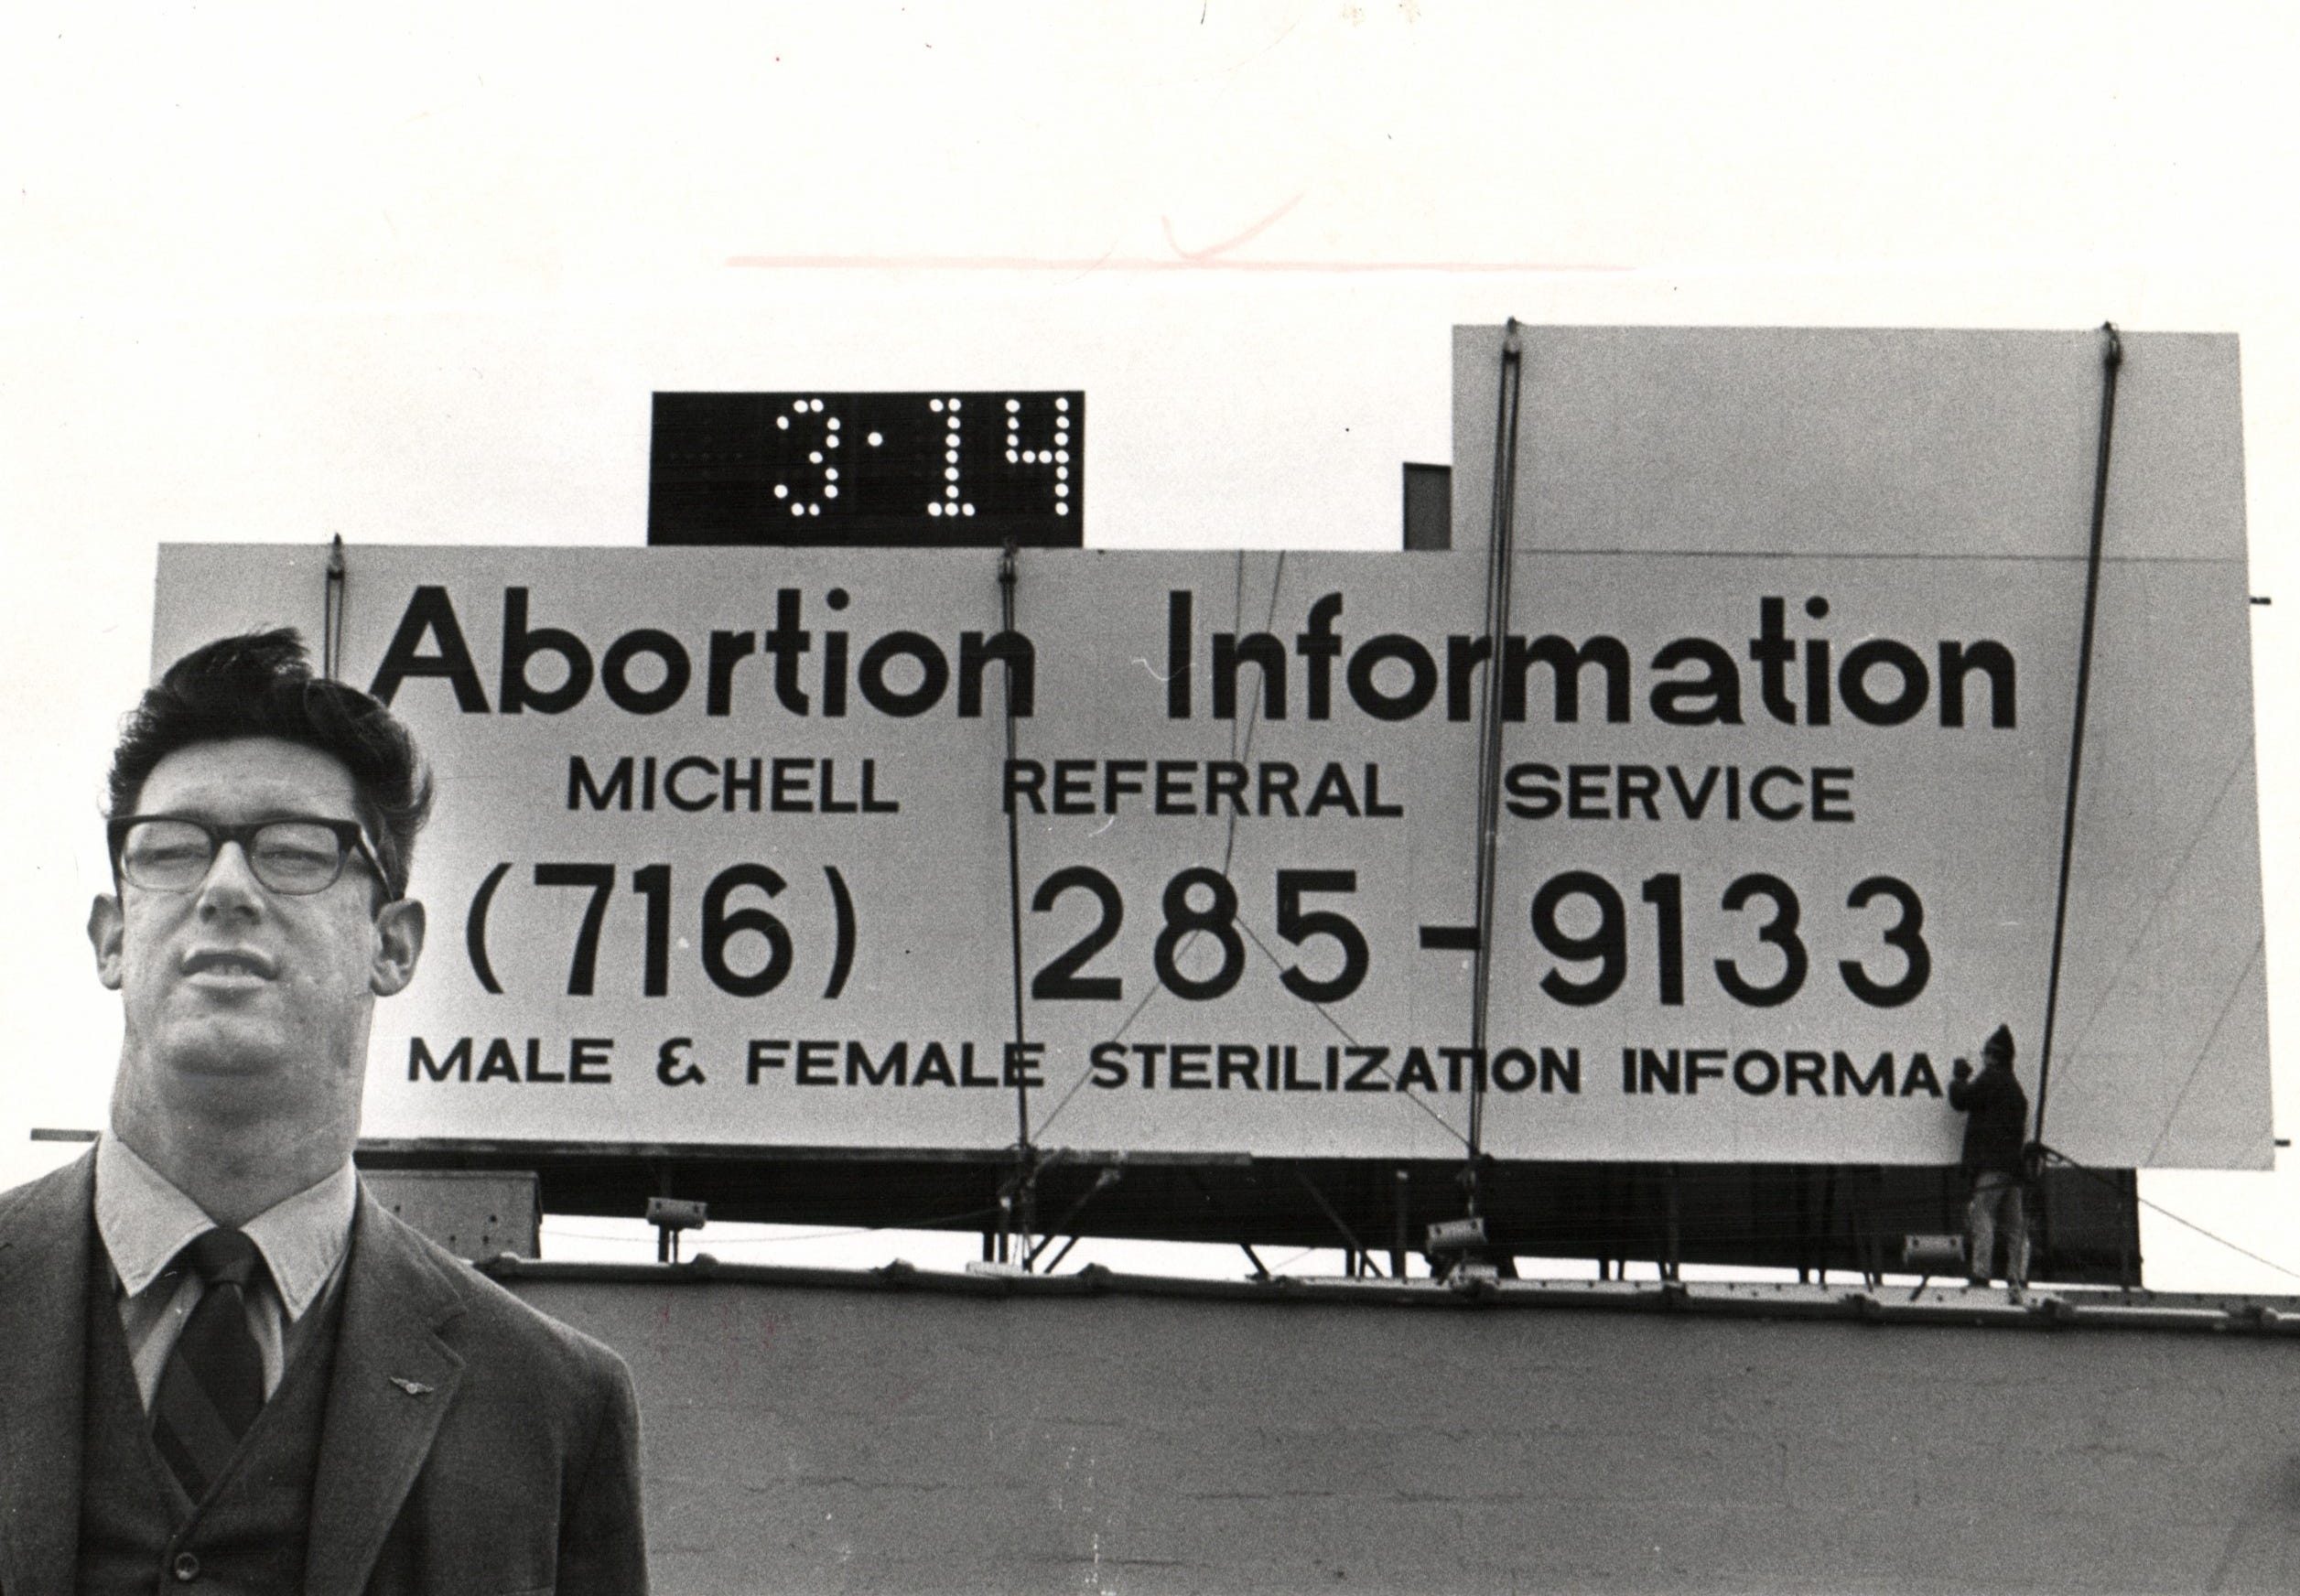 Martin Mitchell stands before a billboard advertising his abortion service in 1970.